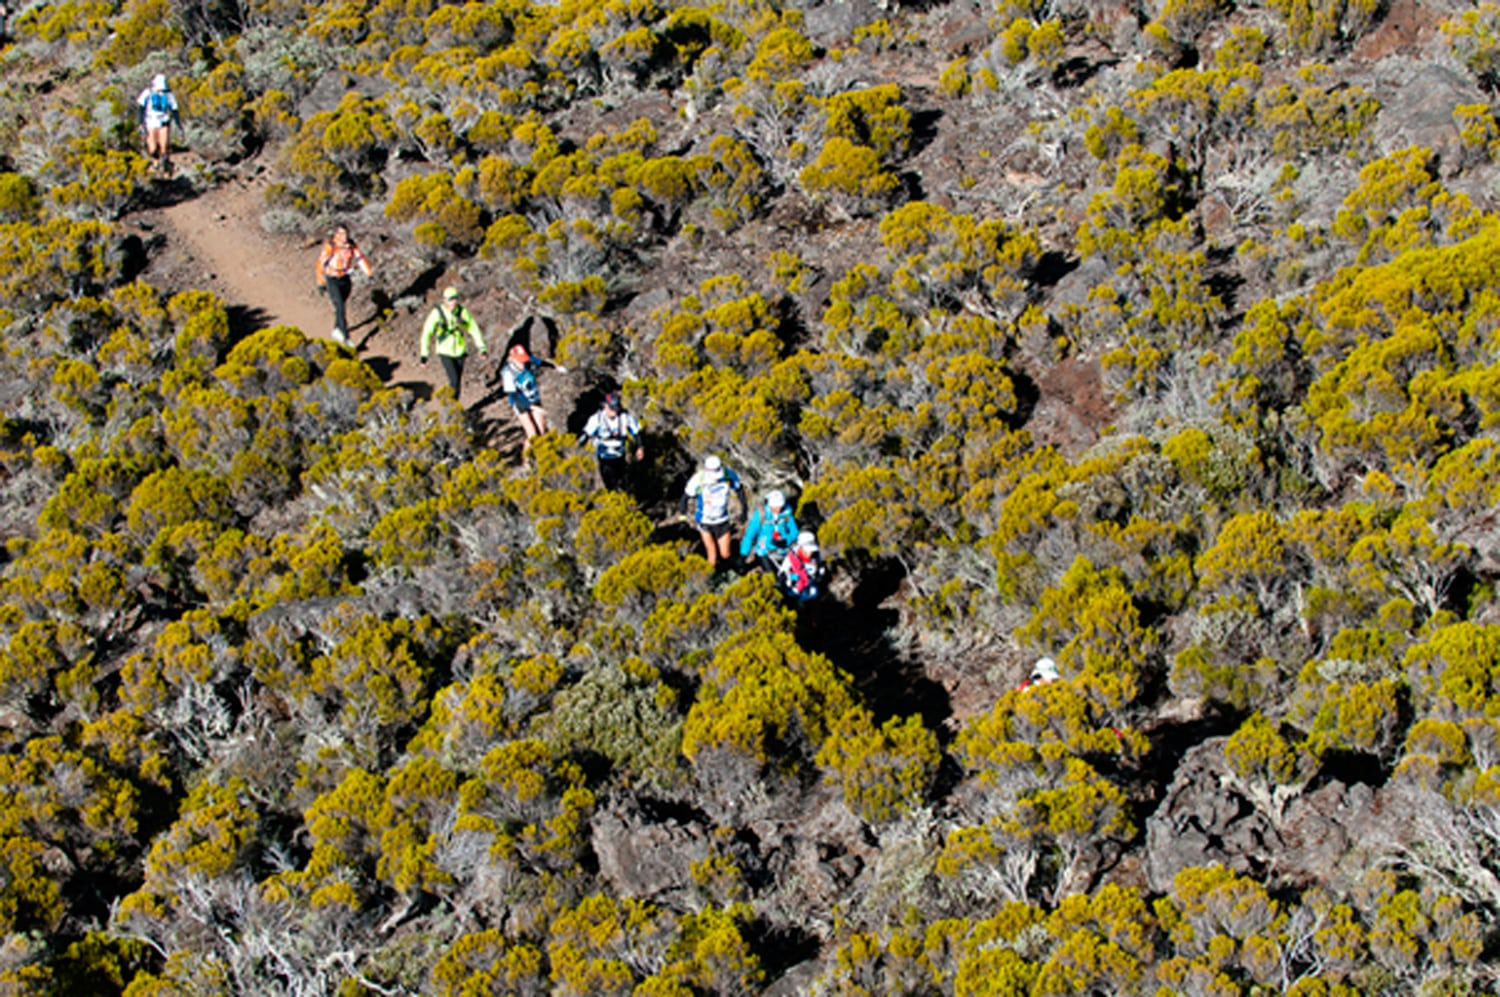 ARTICLE-The grand raid on Reunion Island concludes the 2014 Ultra Trail World Tour